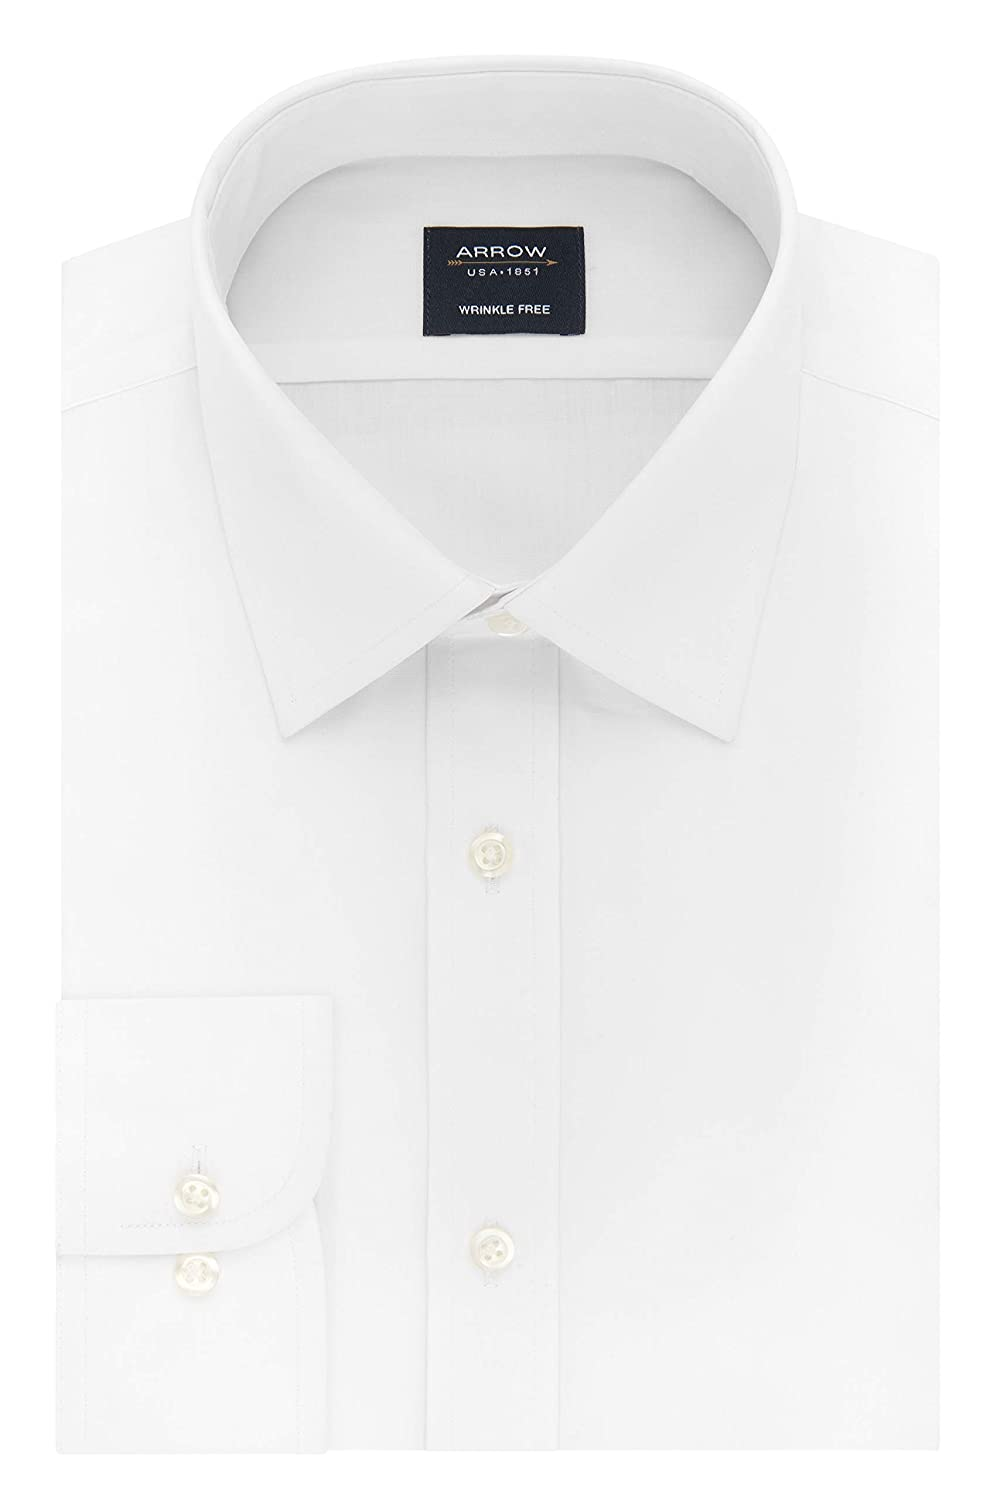 be896b0fdd76 Arrow 1851 Men's Dress Shirt Poplin (Available in Regular, Slim, Fitted,  and Extreme Slim Fits) at Amazon Men's Clothing store: